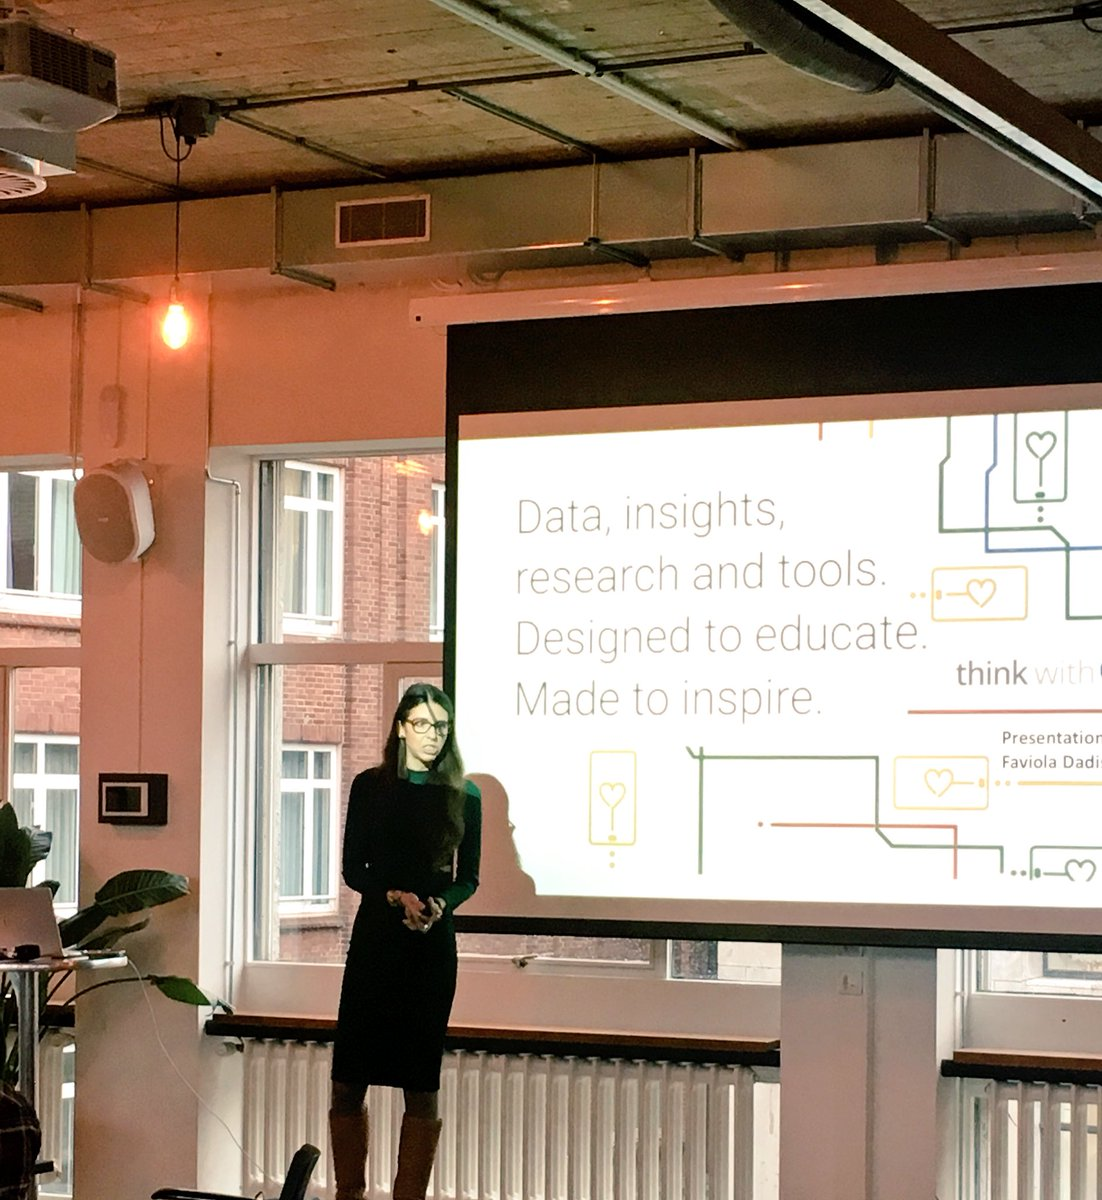 Solve #newmr challenges with  @Google and grow with data driven real time optimalisation  #- estimate the value  of your products with @Veylinx auction research #marketinsights #insights Now live @ESOMAR Research Rally @Neuro_Barbie @AnouarElHaji<br>http://pic.twitter.com/Qje79wkzhy